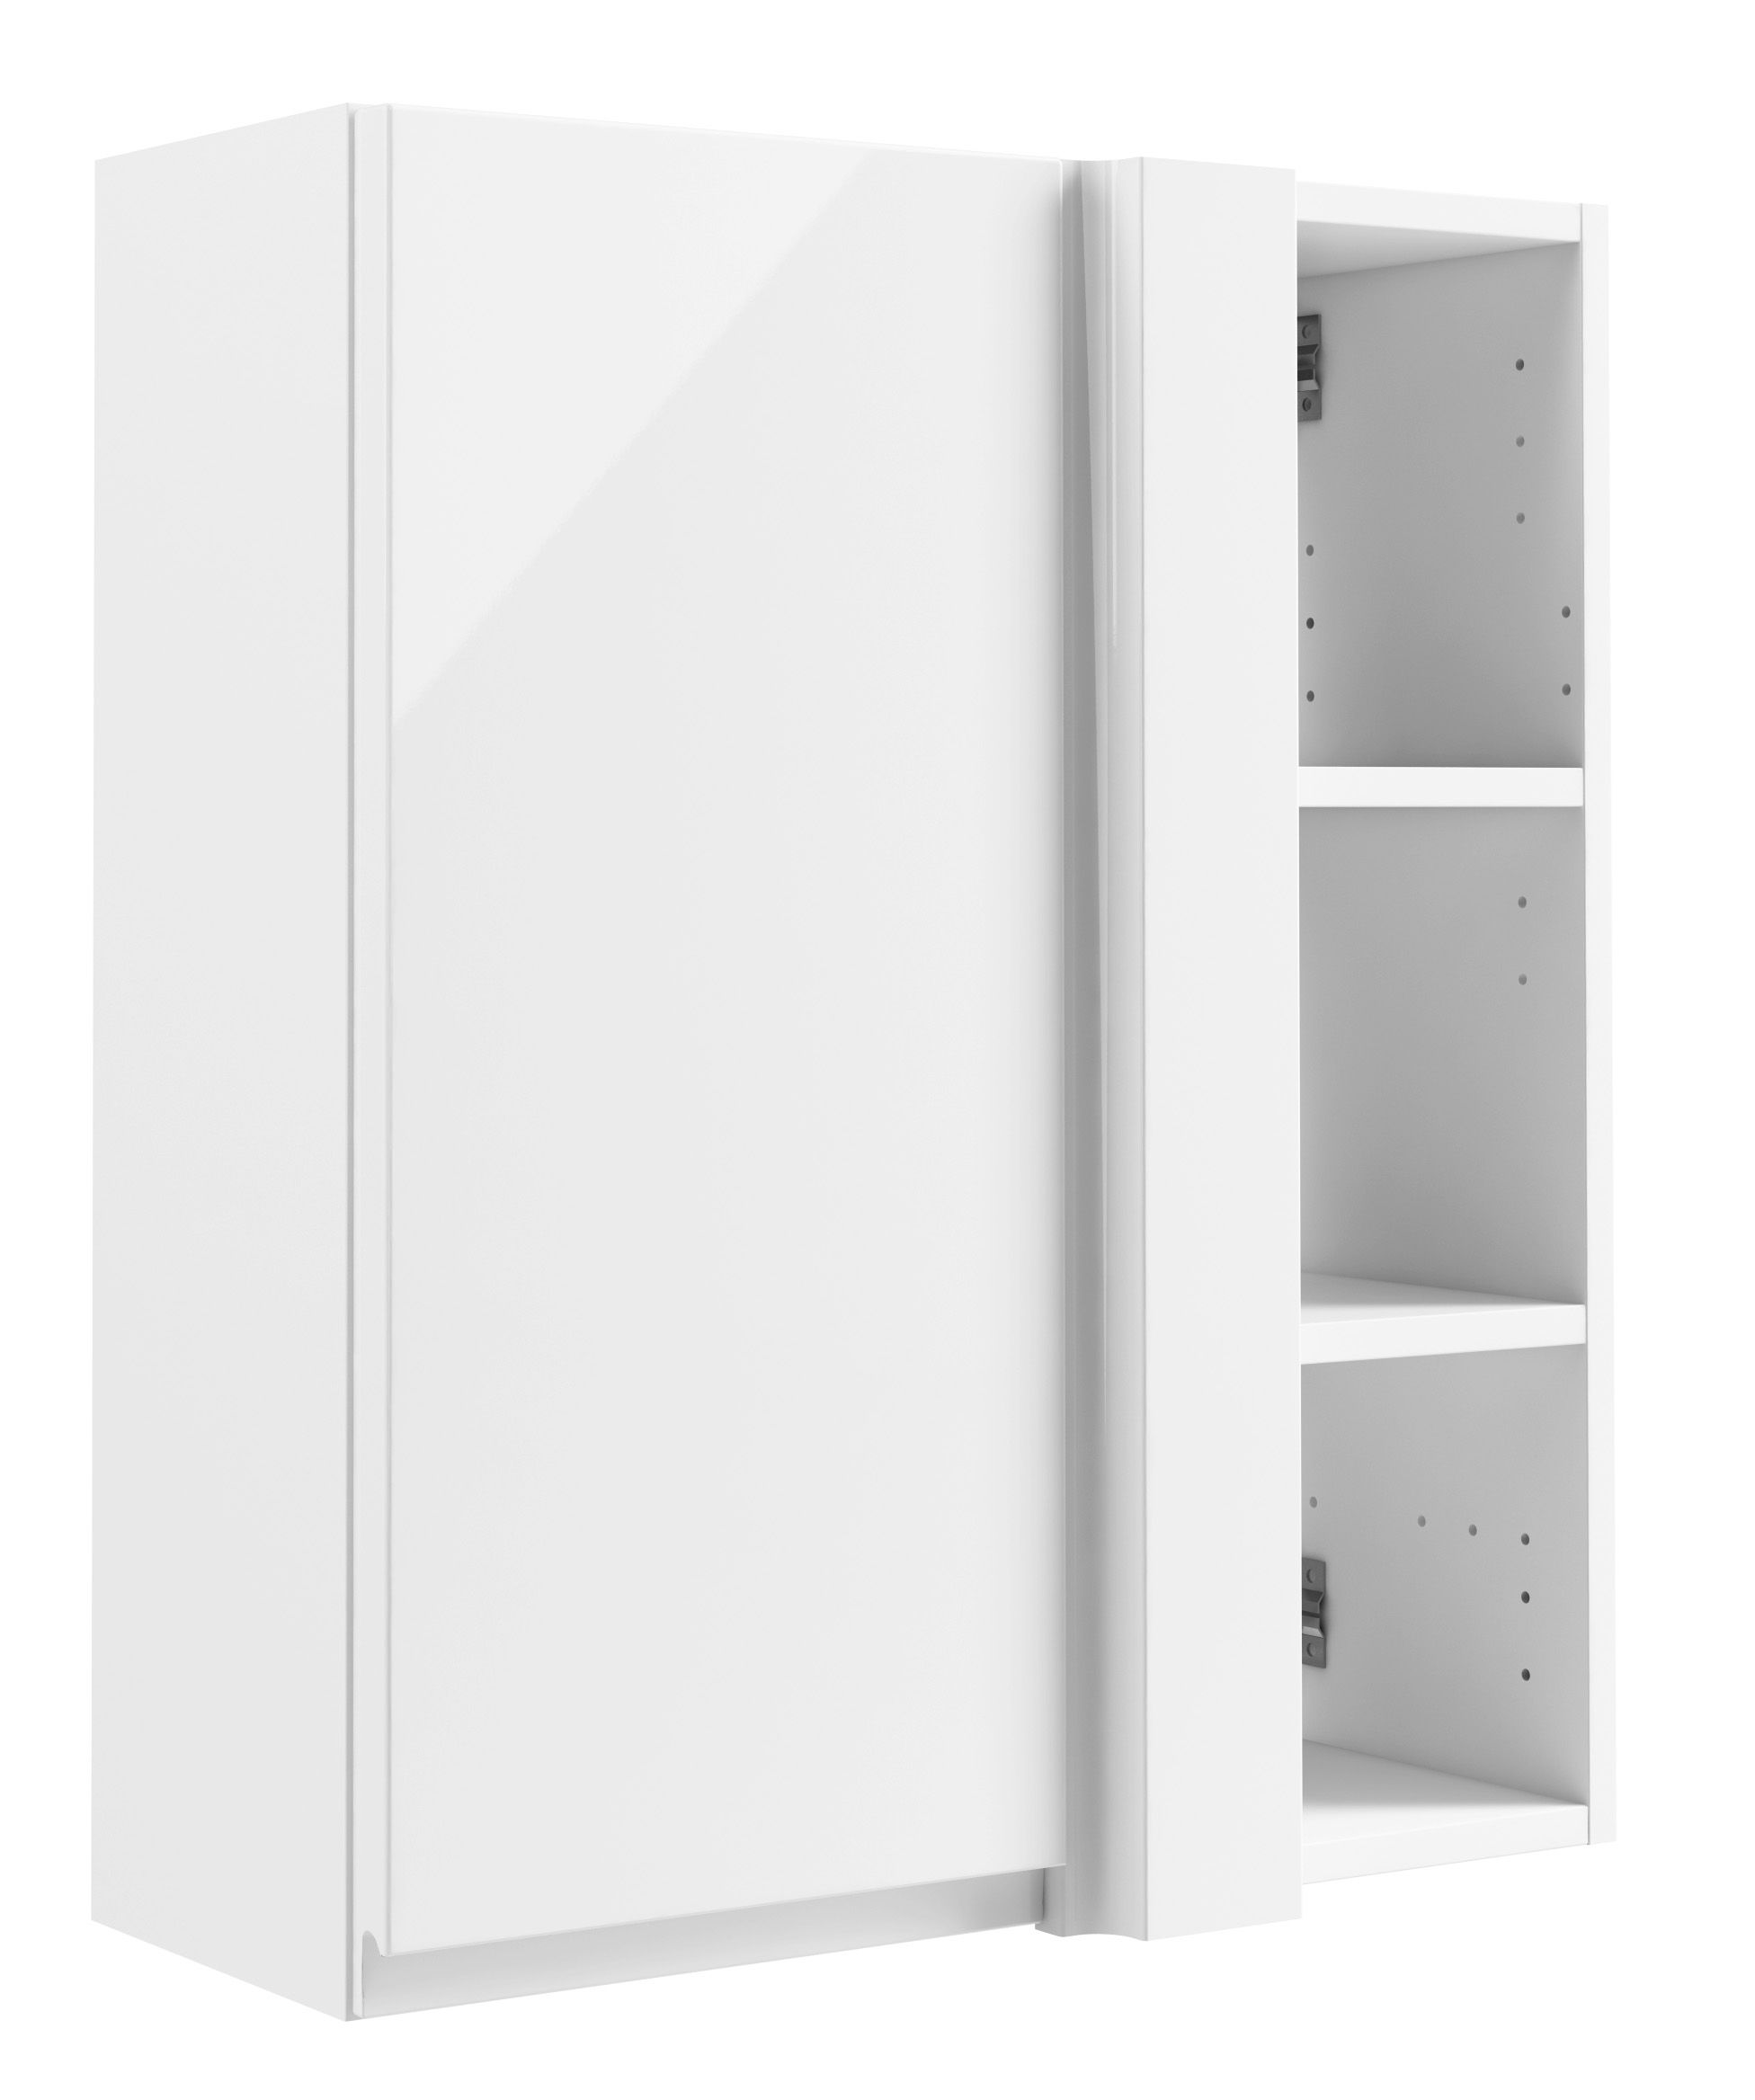 Cooke and lewis bathroom wall cabinets mf cabinets for B q bathroom cabinets